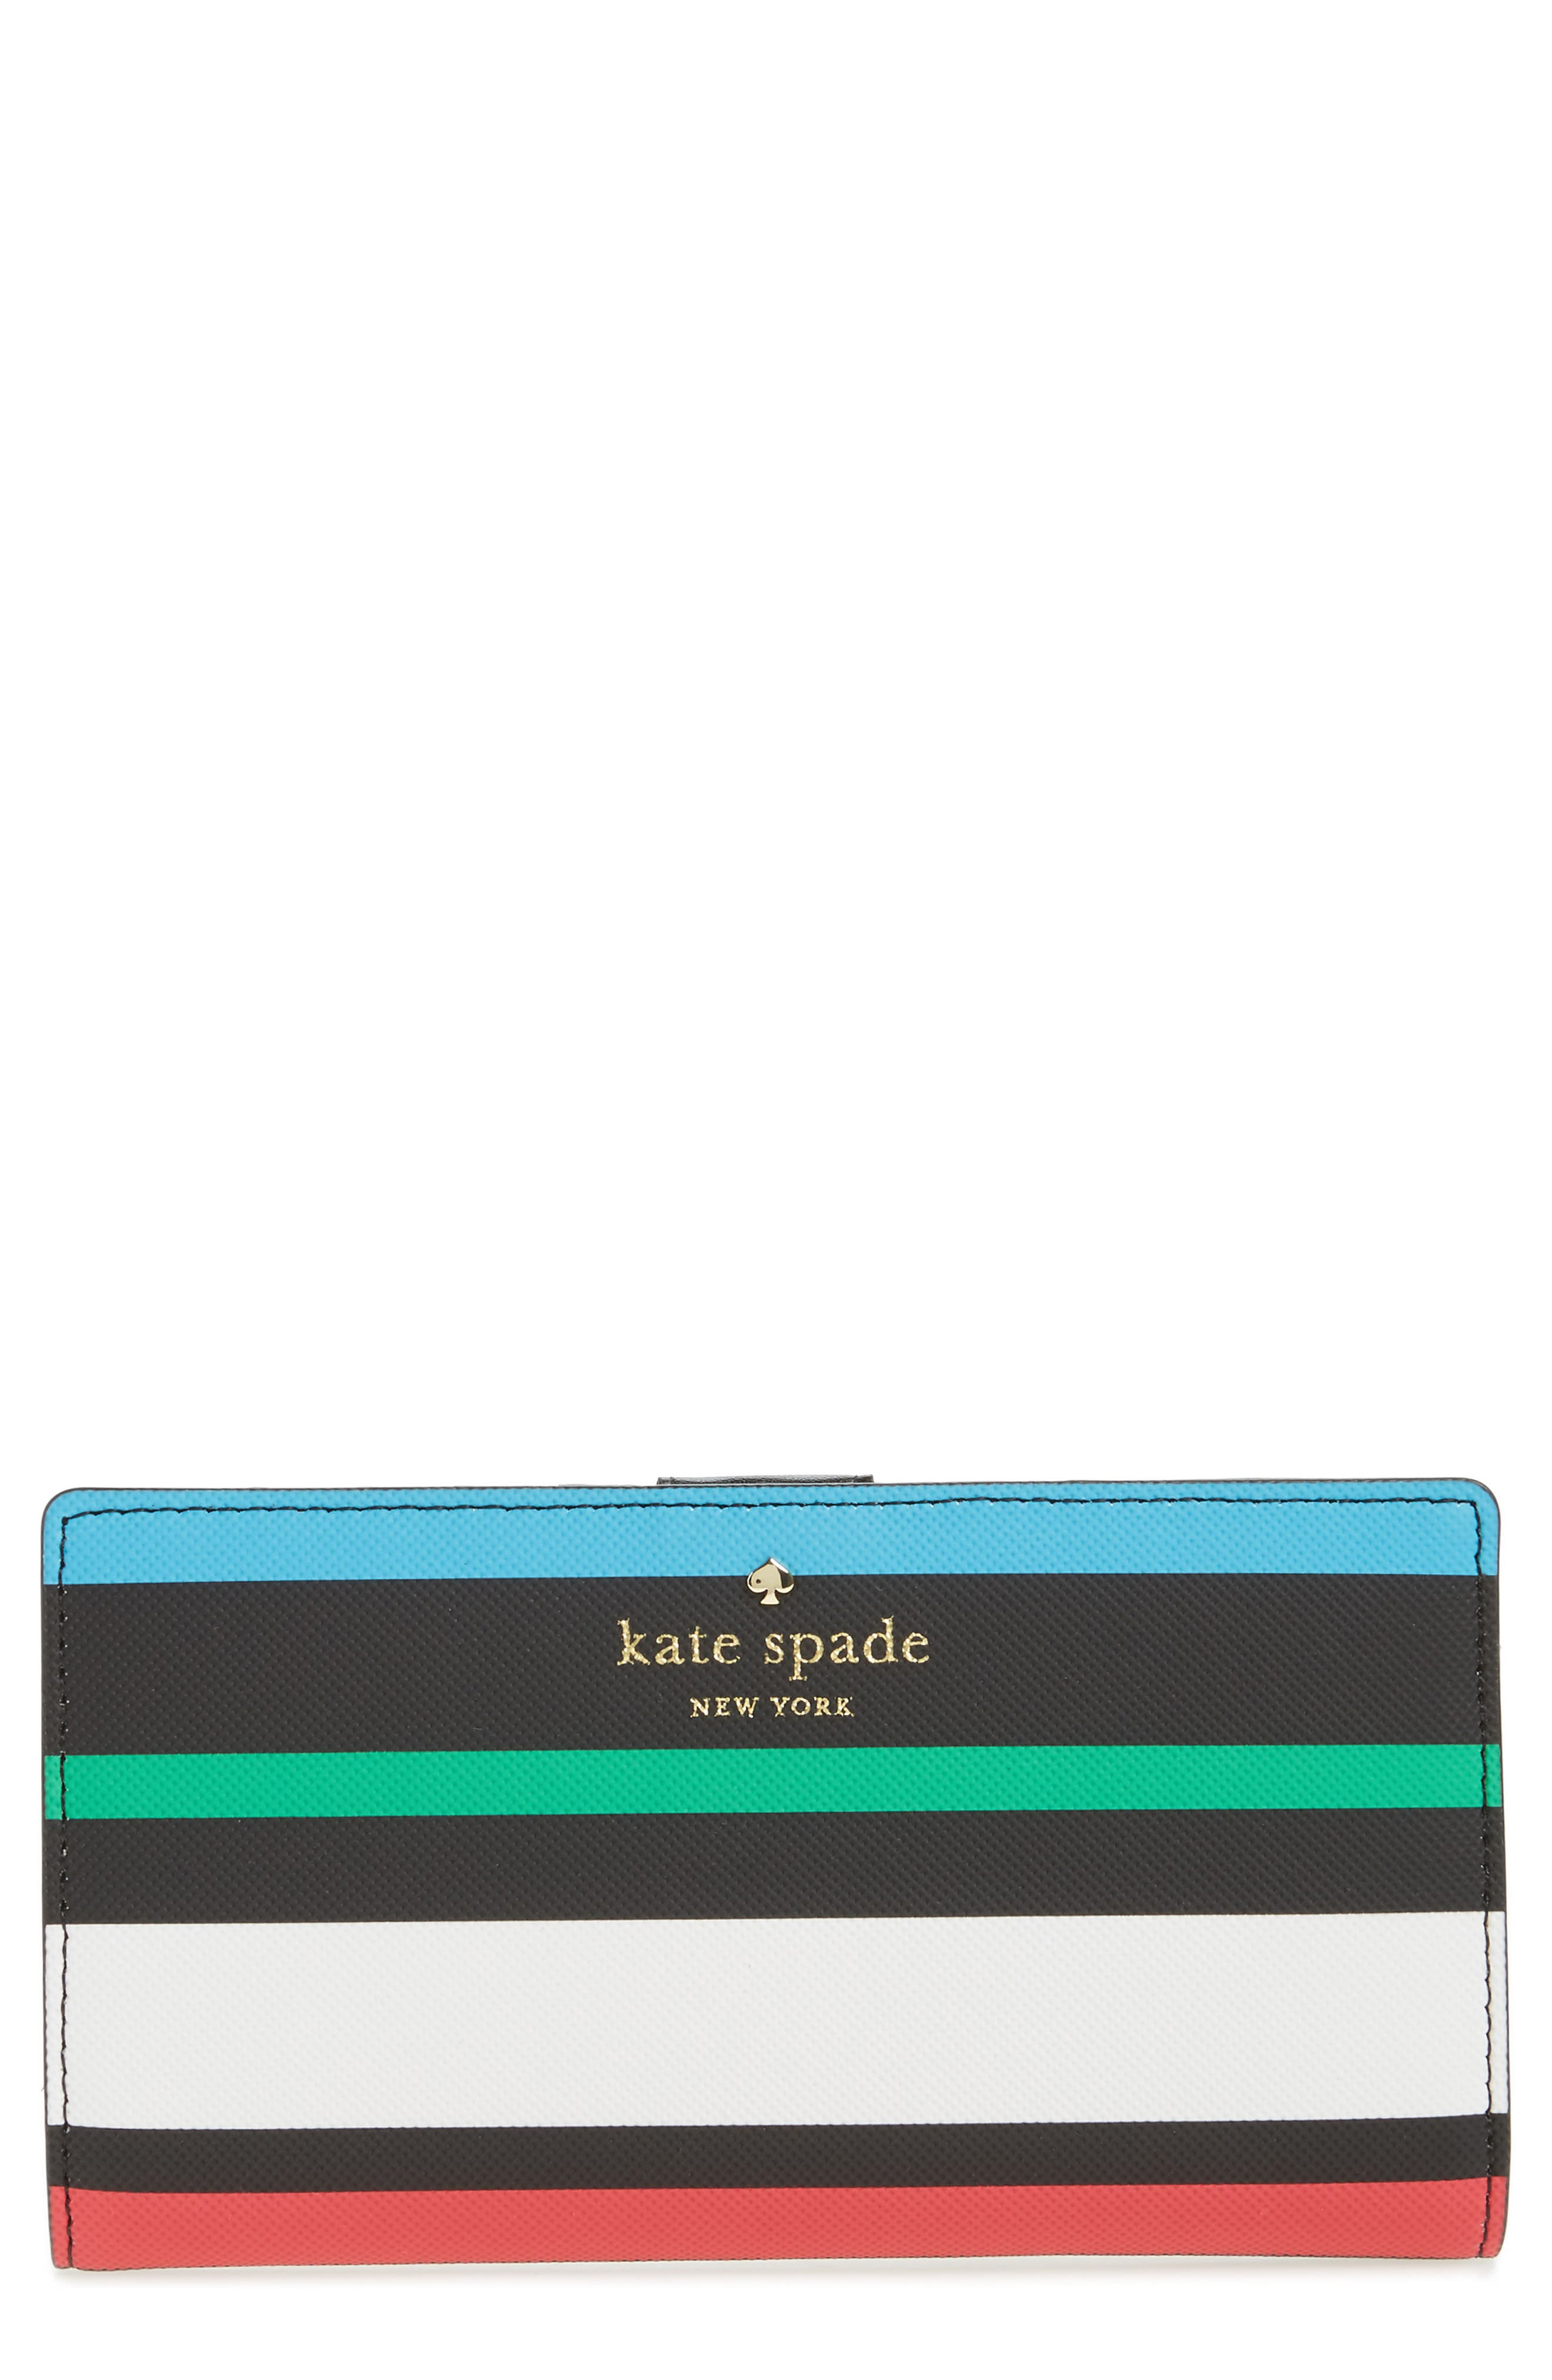 kate spade new york harding street - fiesta stripe stacy wallet